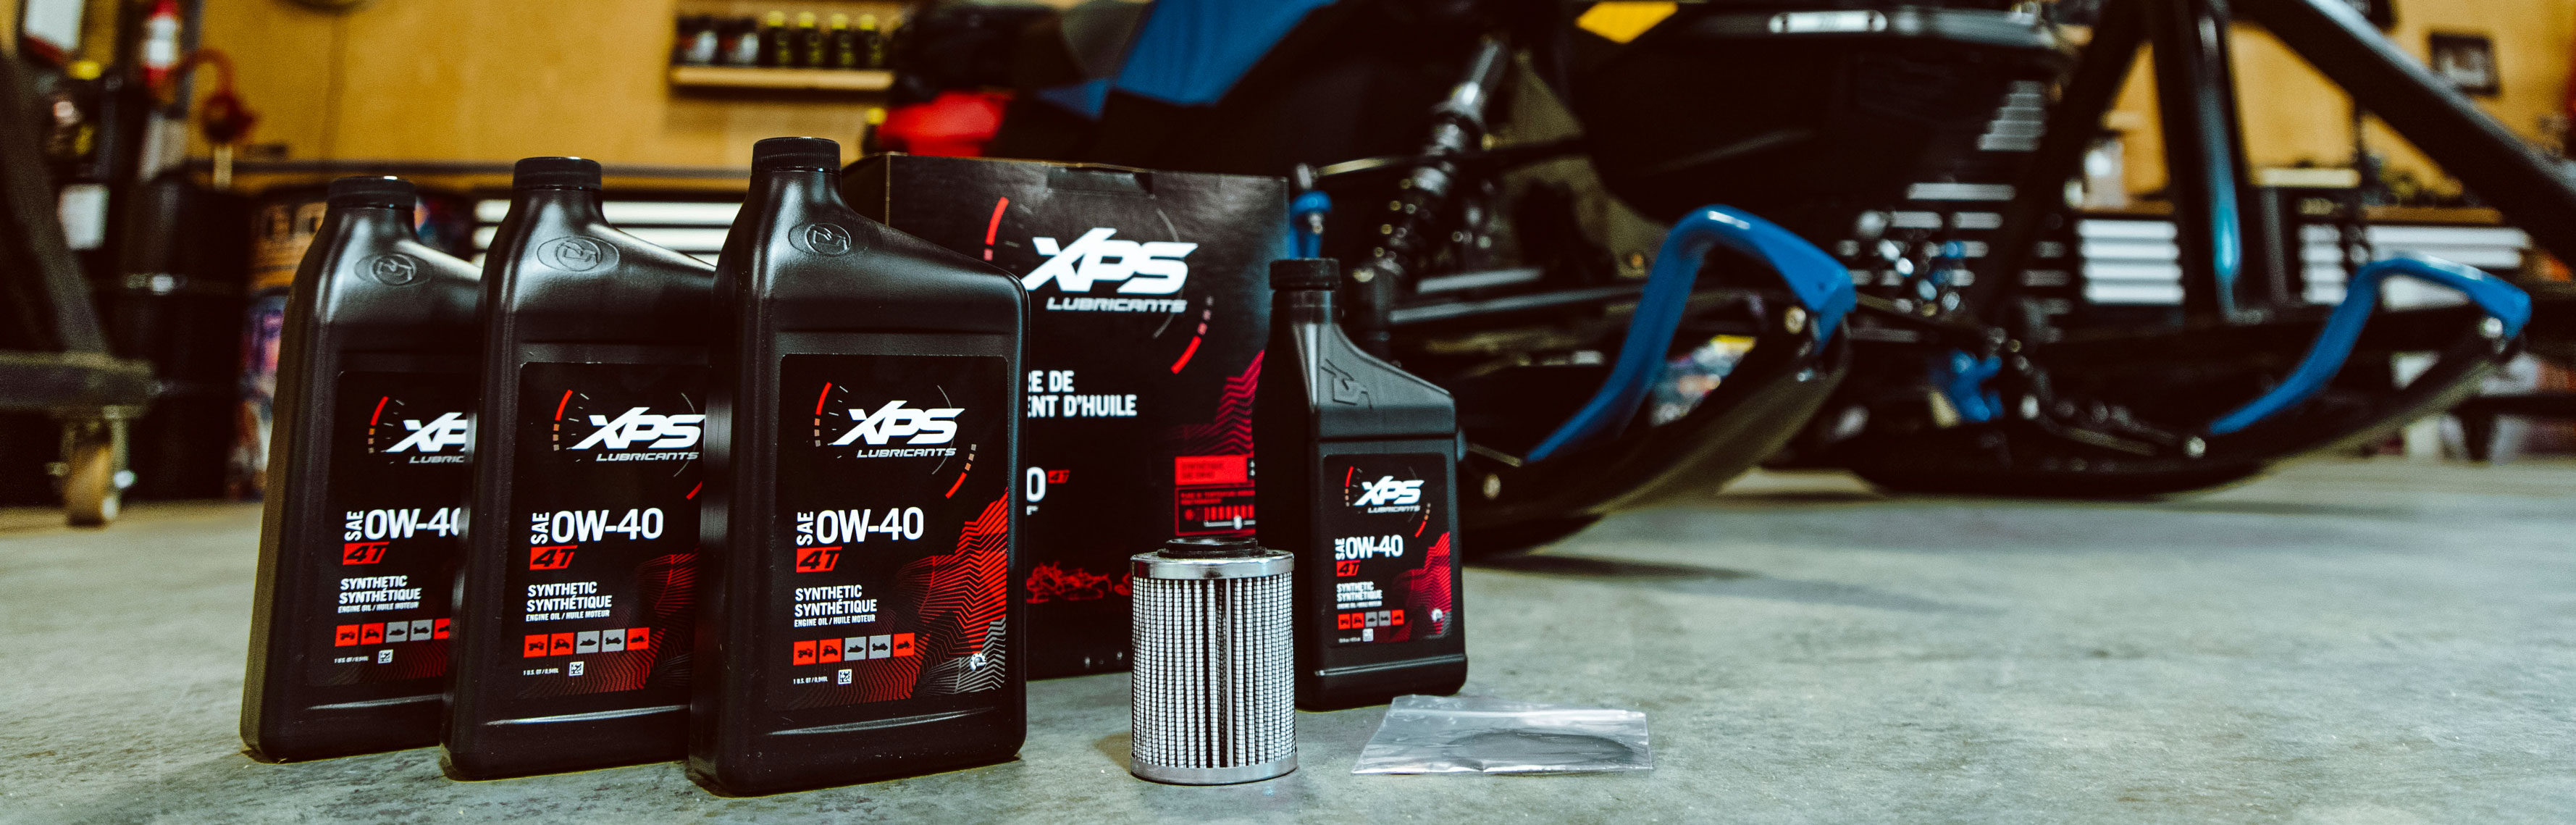 XPS Lubricants and Oil for Summerize your snowmobile